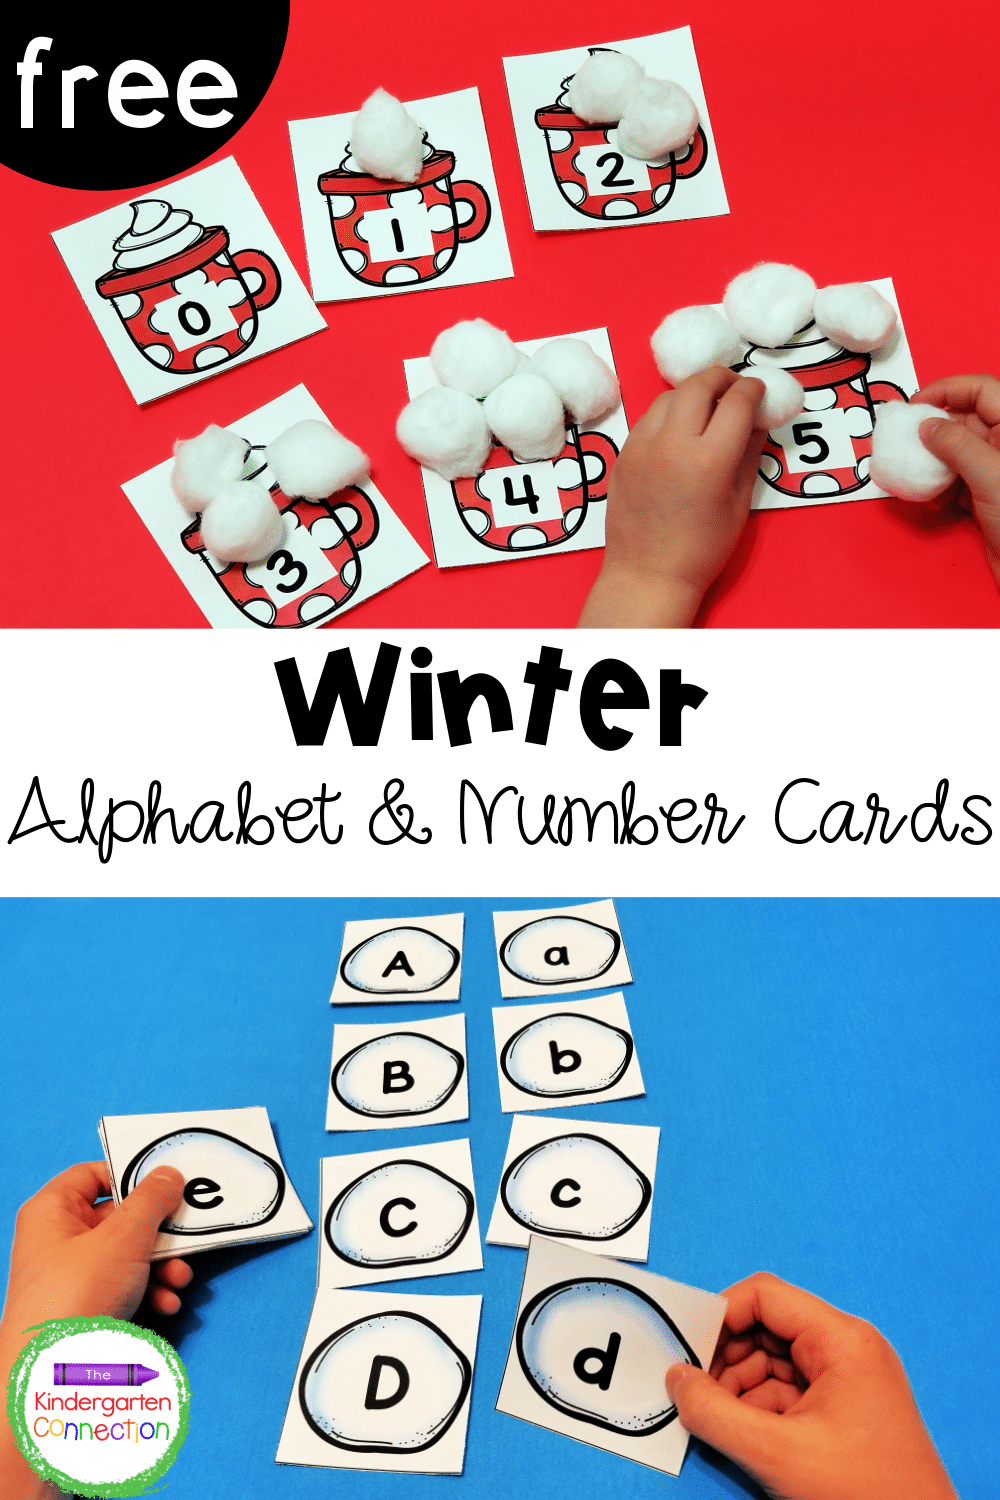 These free alphabet and number cards are the perfect winter themed math and literacy activities! Use them in your small groups or centers!